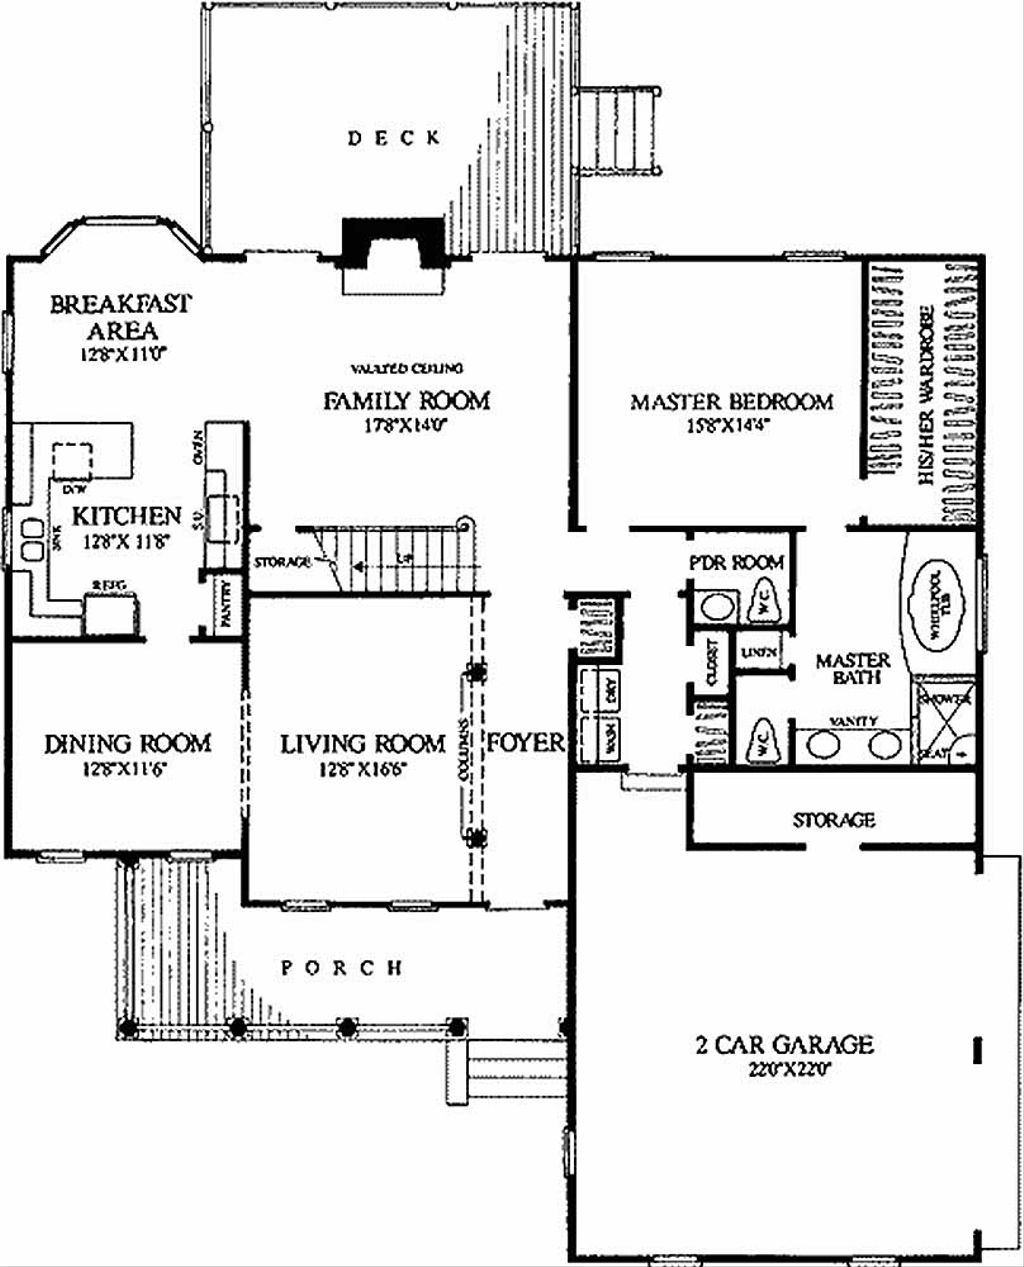 Southern style house plan 3 beds 2 baths 2397 sq ft plan for Eplans com